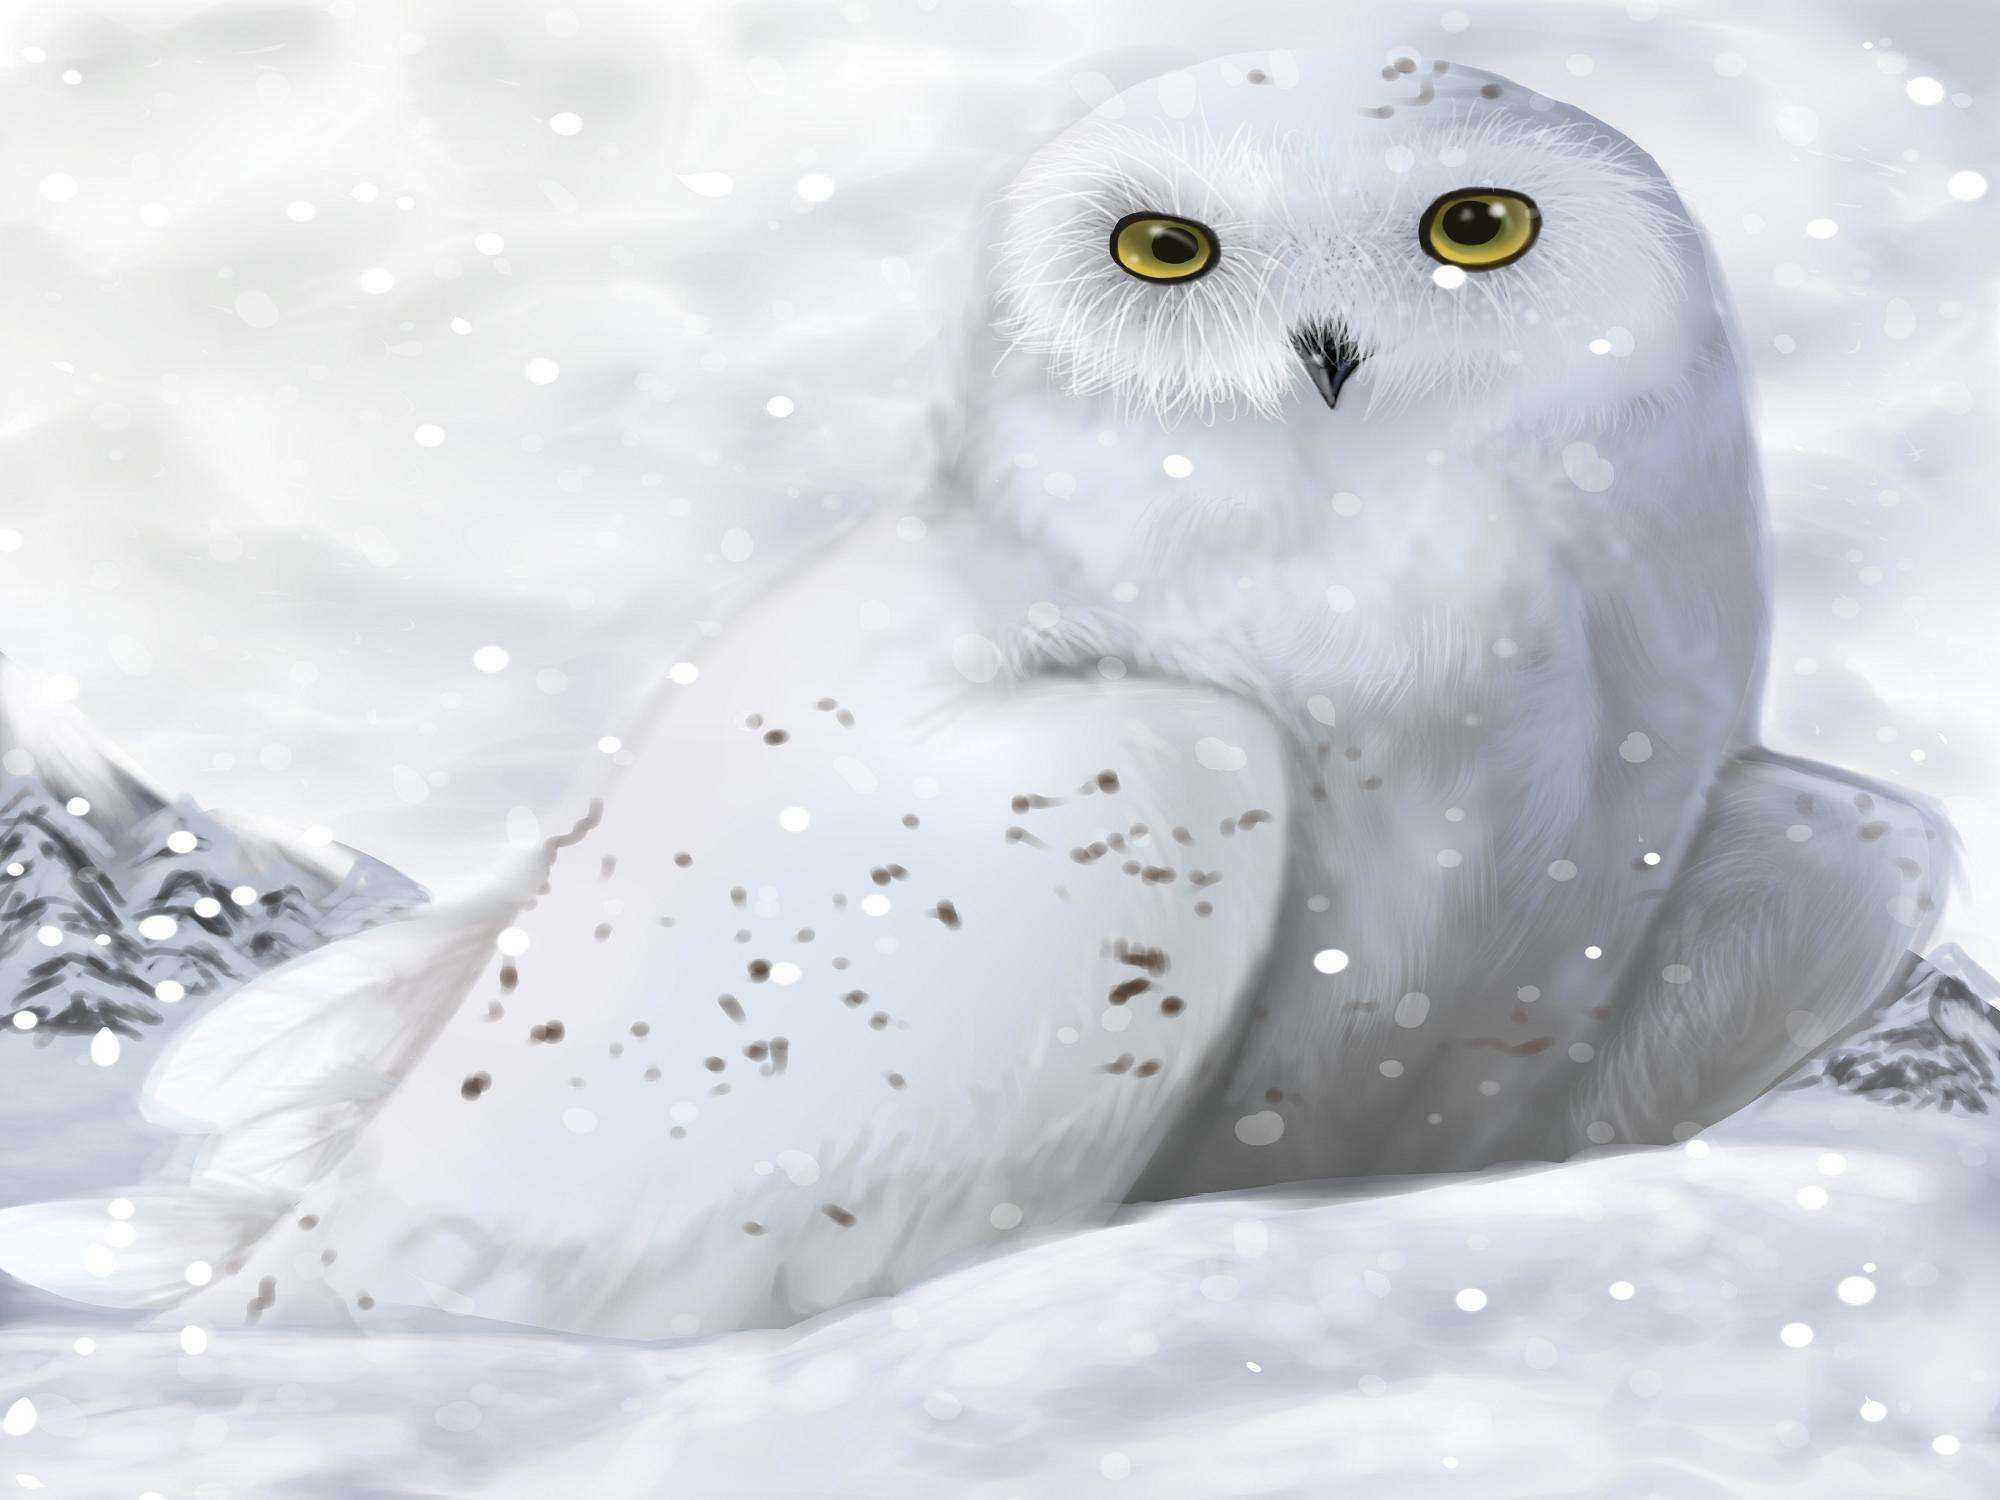 White Winter Owl Wallpapers HD Wallpapers